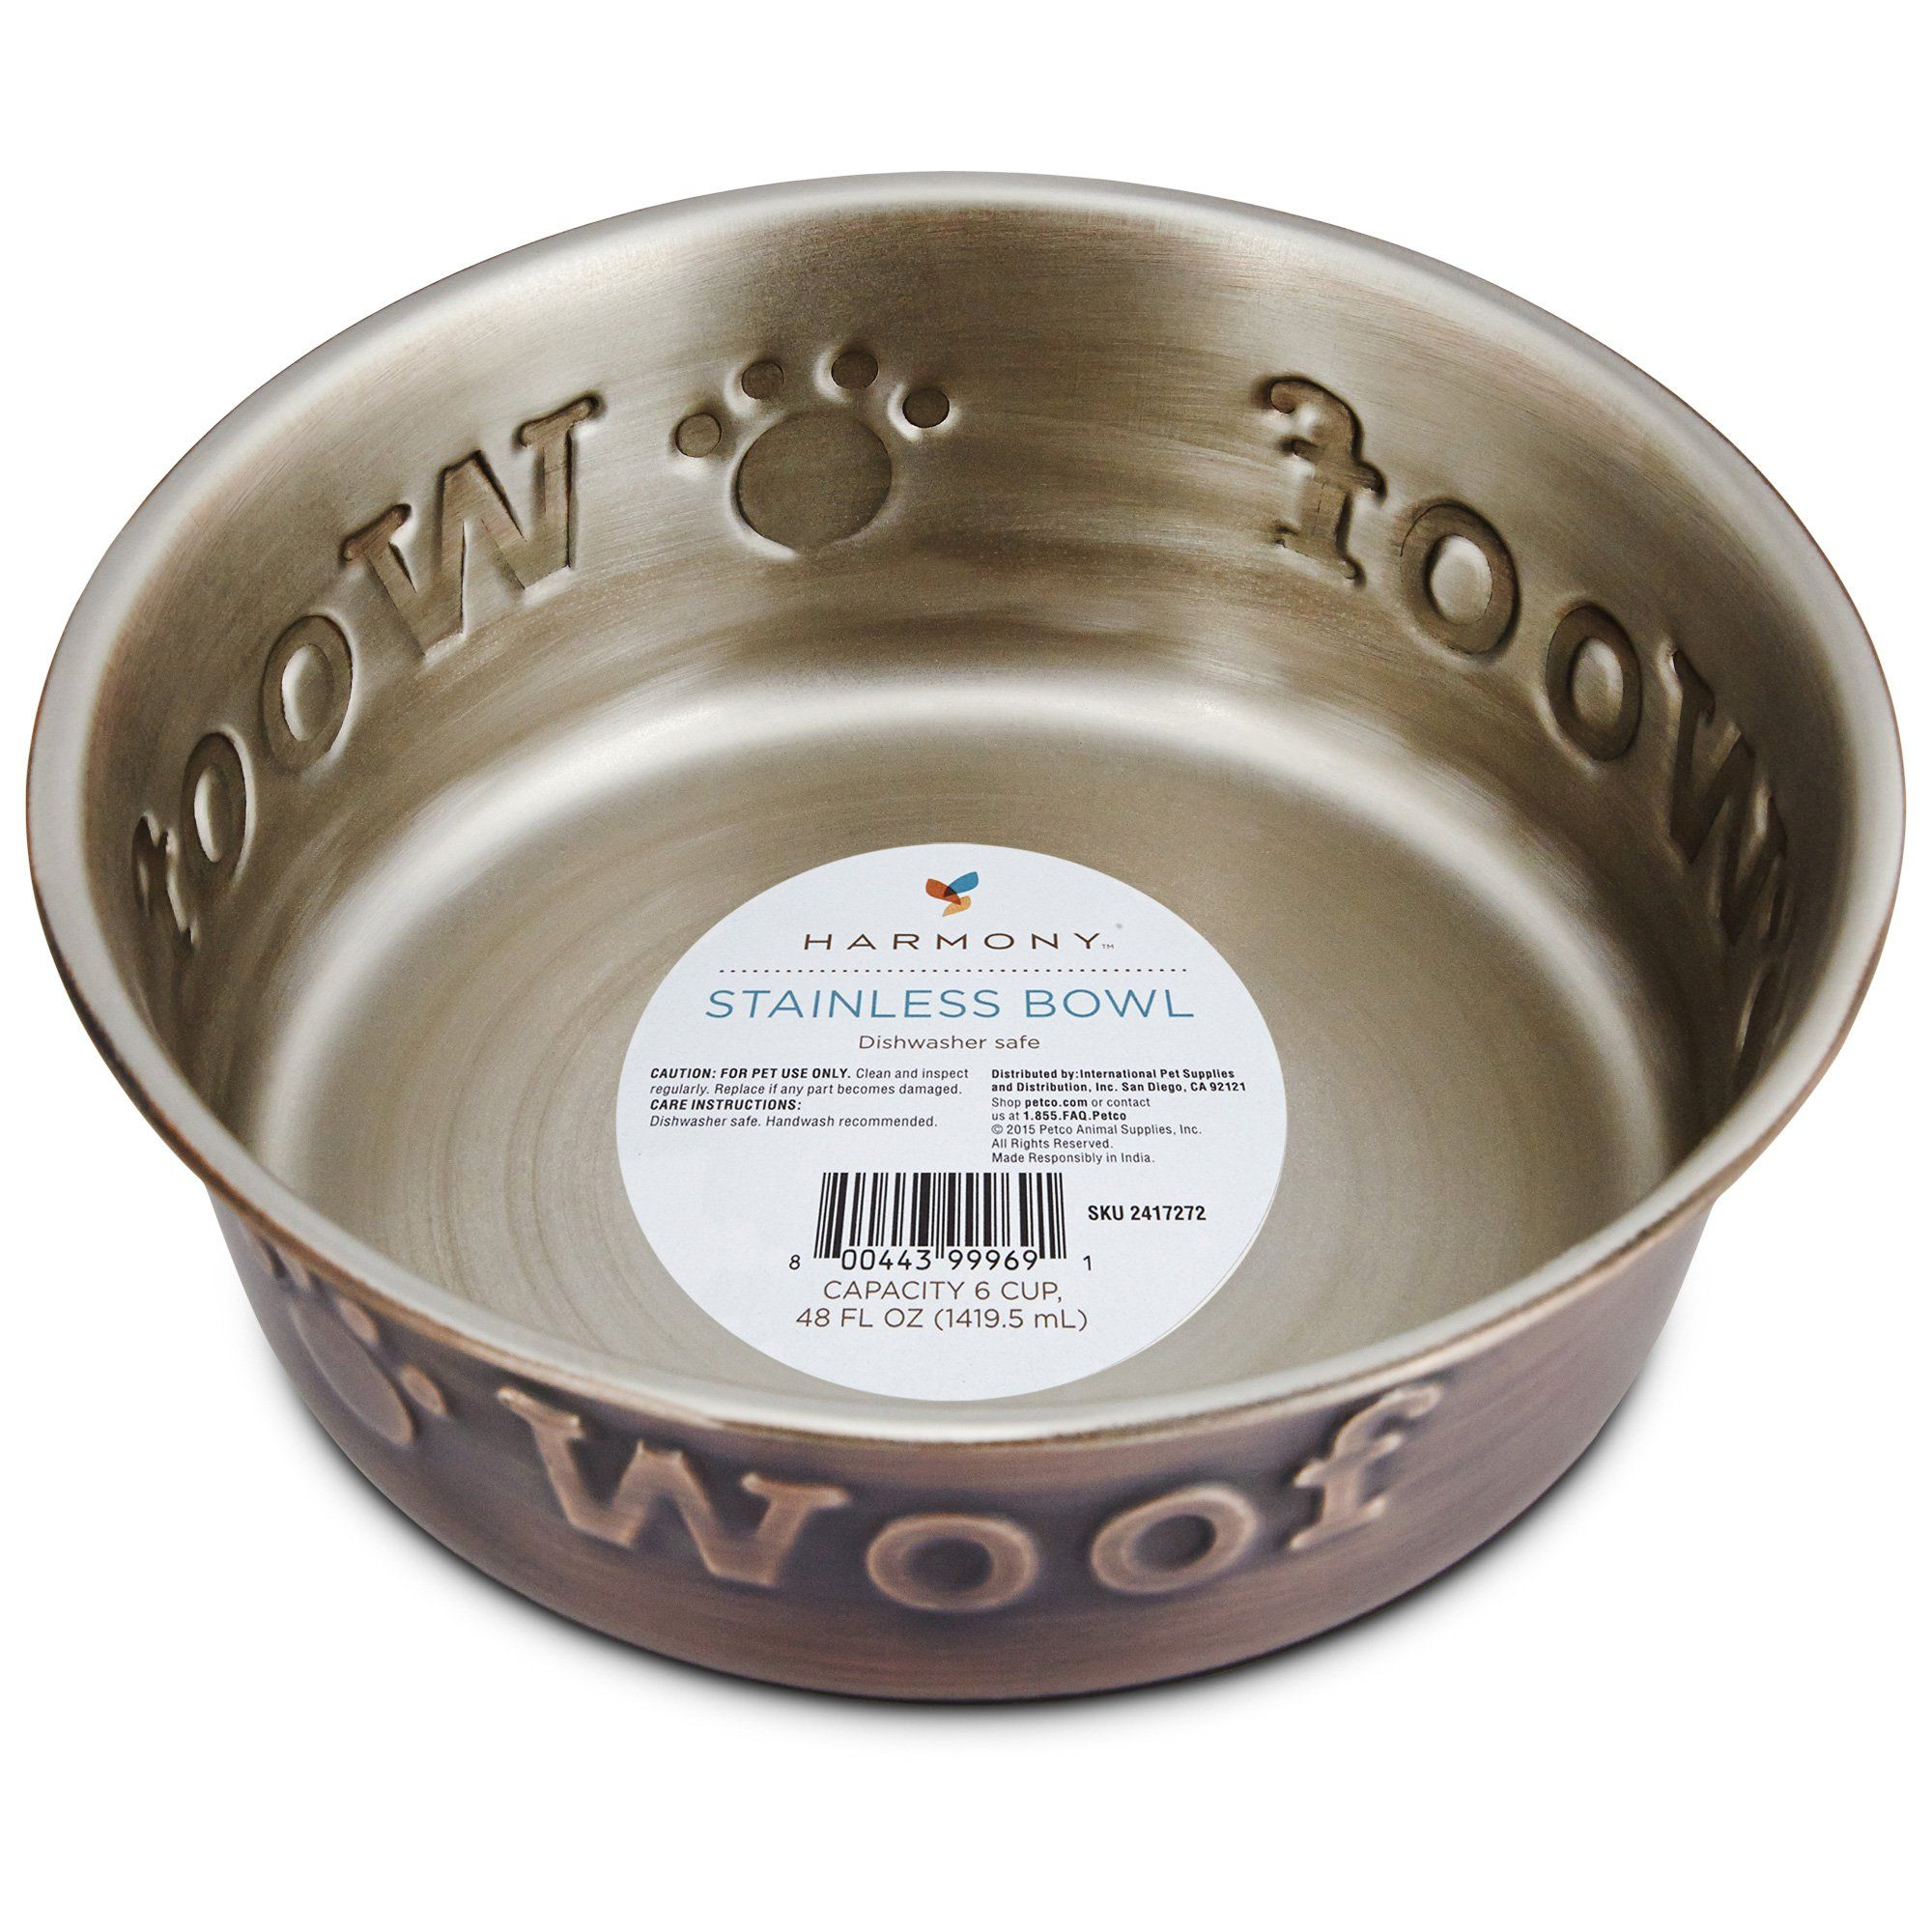 Harmony stainless steel woof copper dog bowl 1 c petco